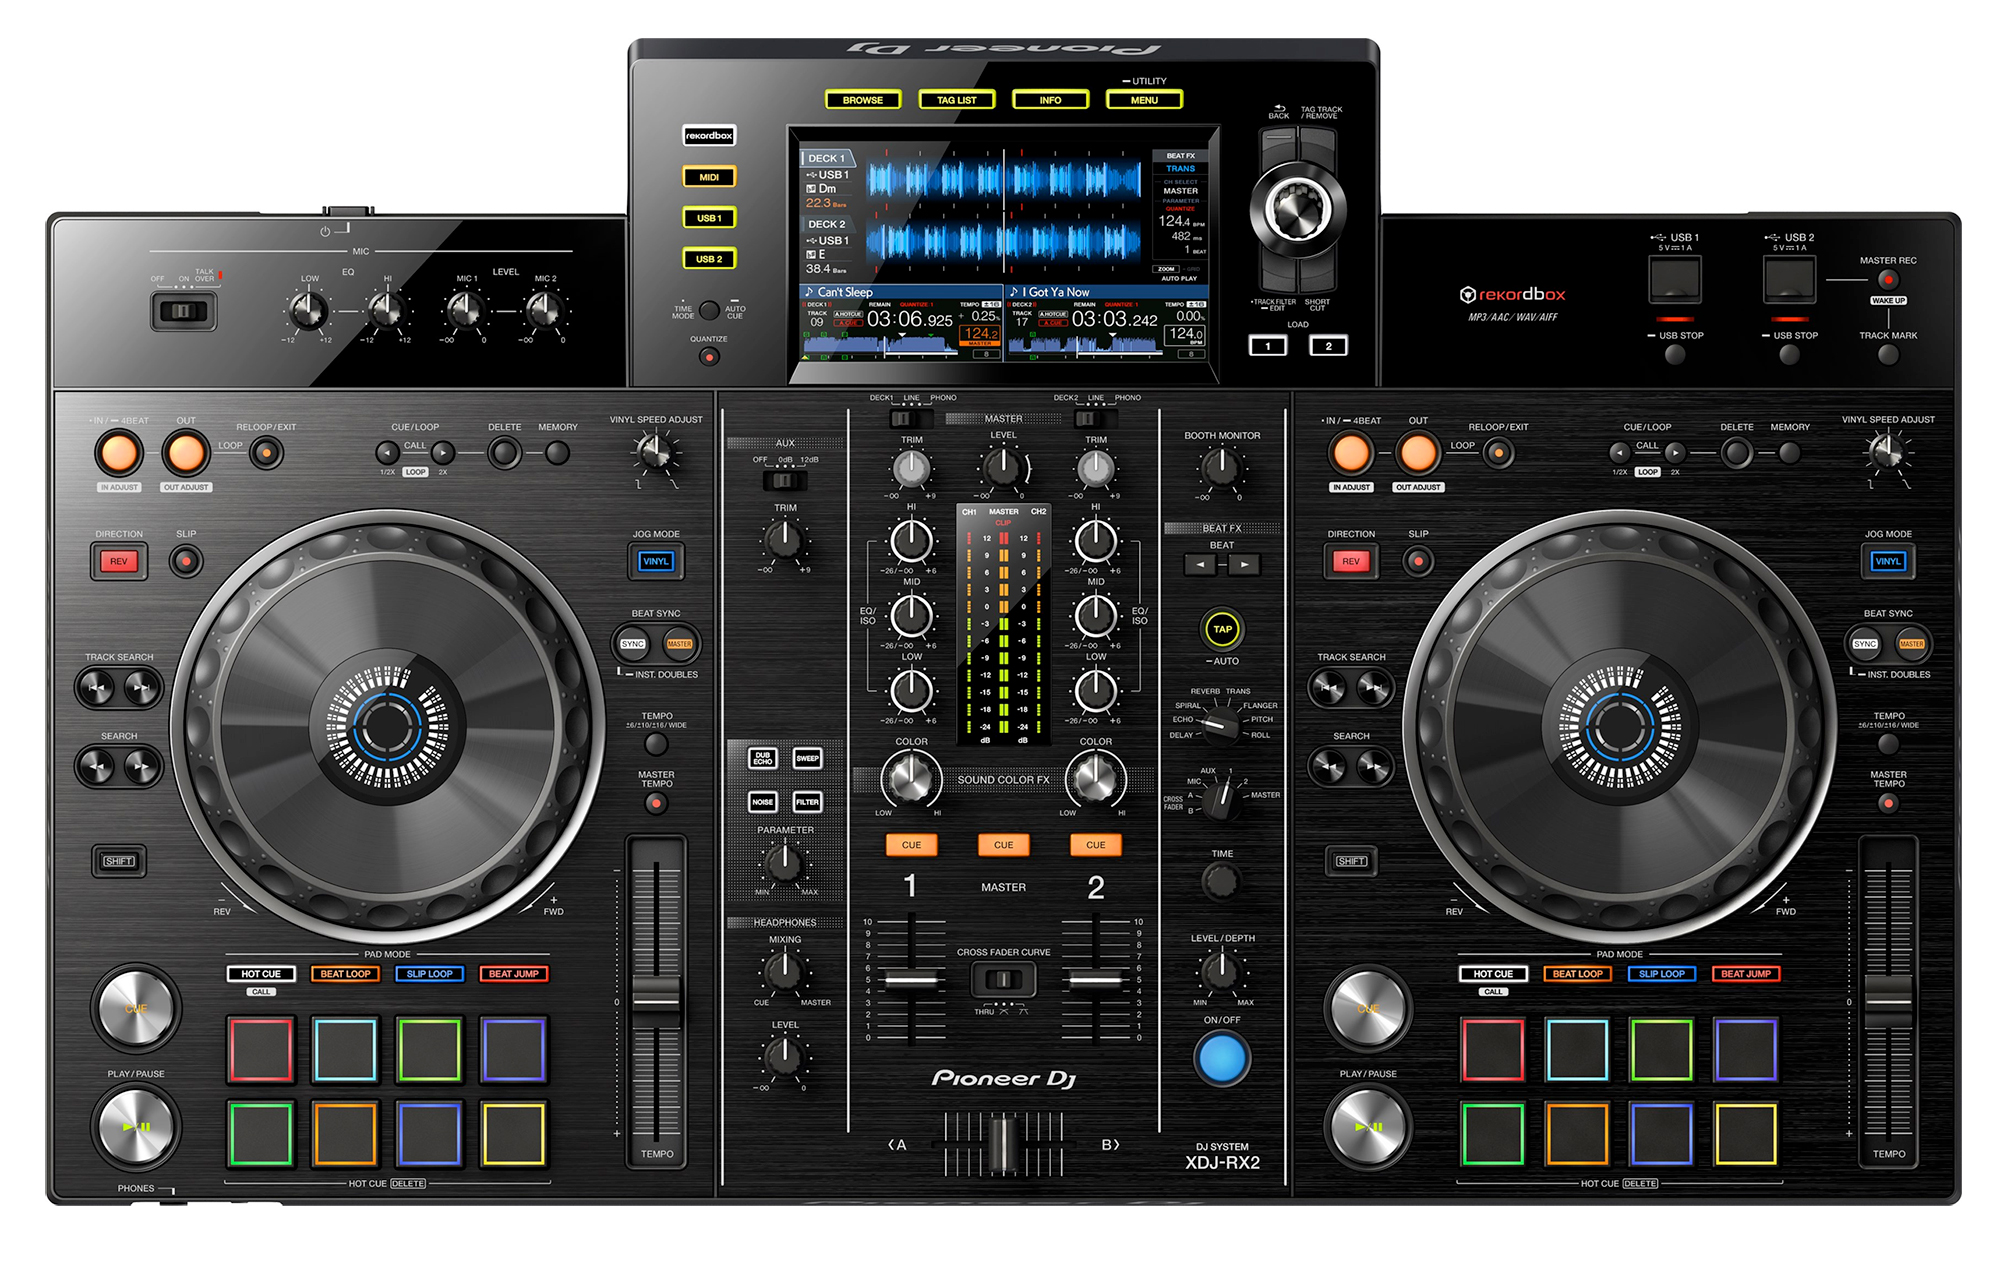 Pioneer Dj Xdj Rx2 All In One Rekordbox Dj System